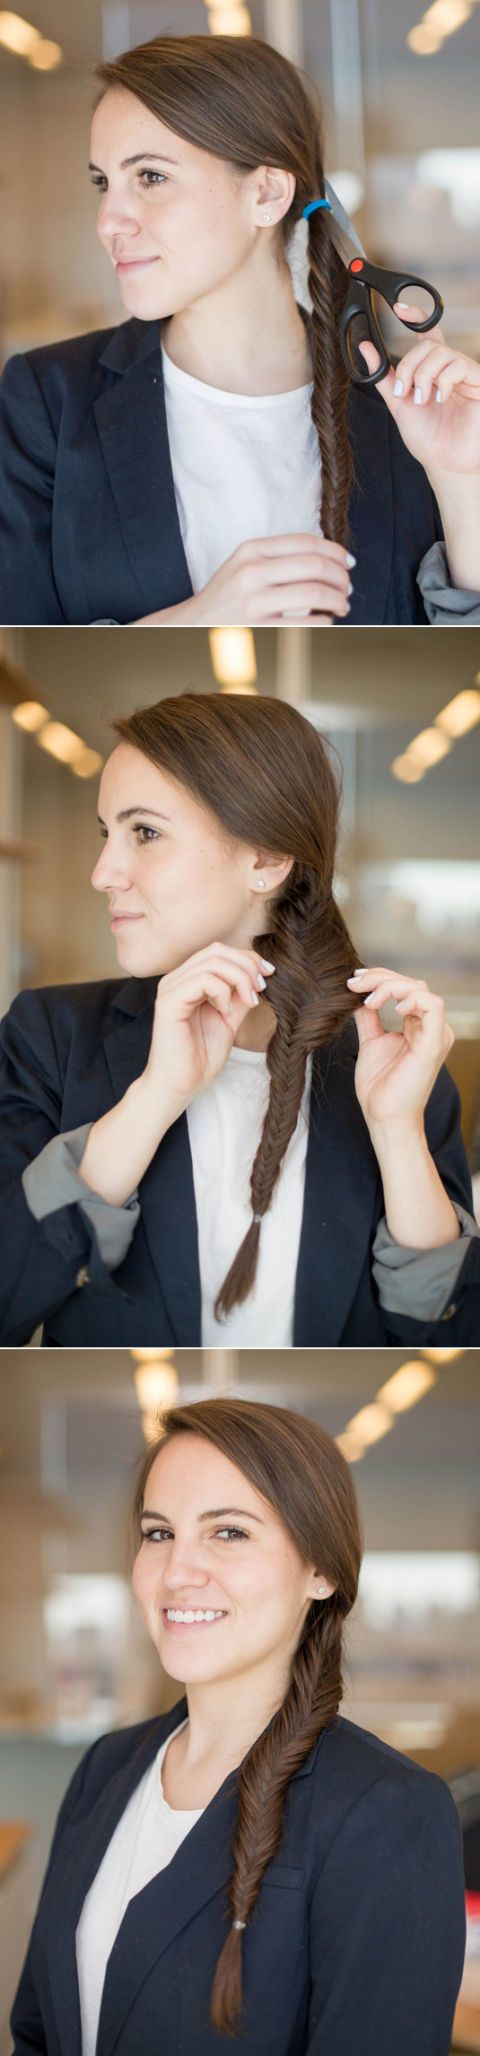 Easy Hairstyles - Fast and Simple Hair Styles